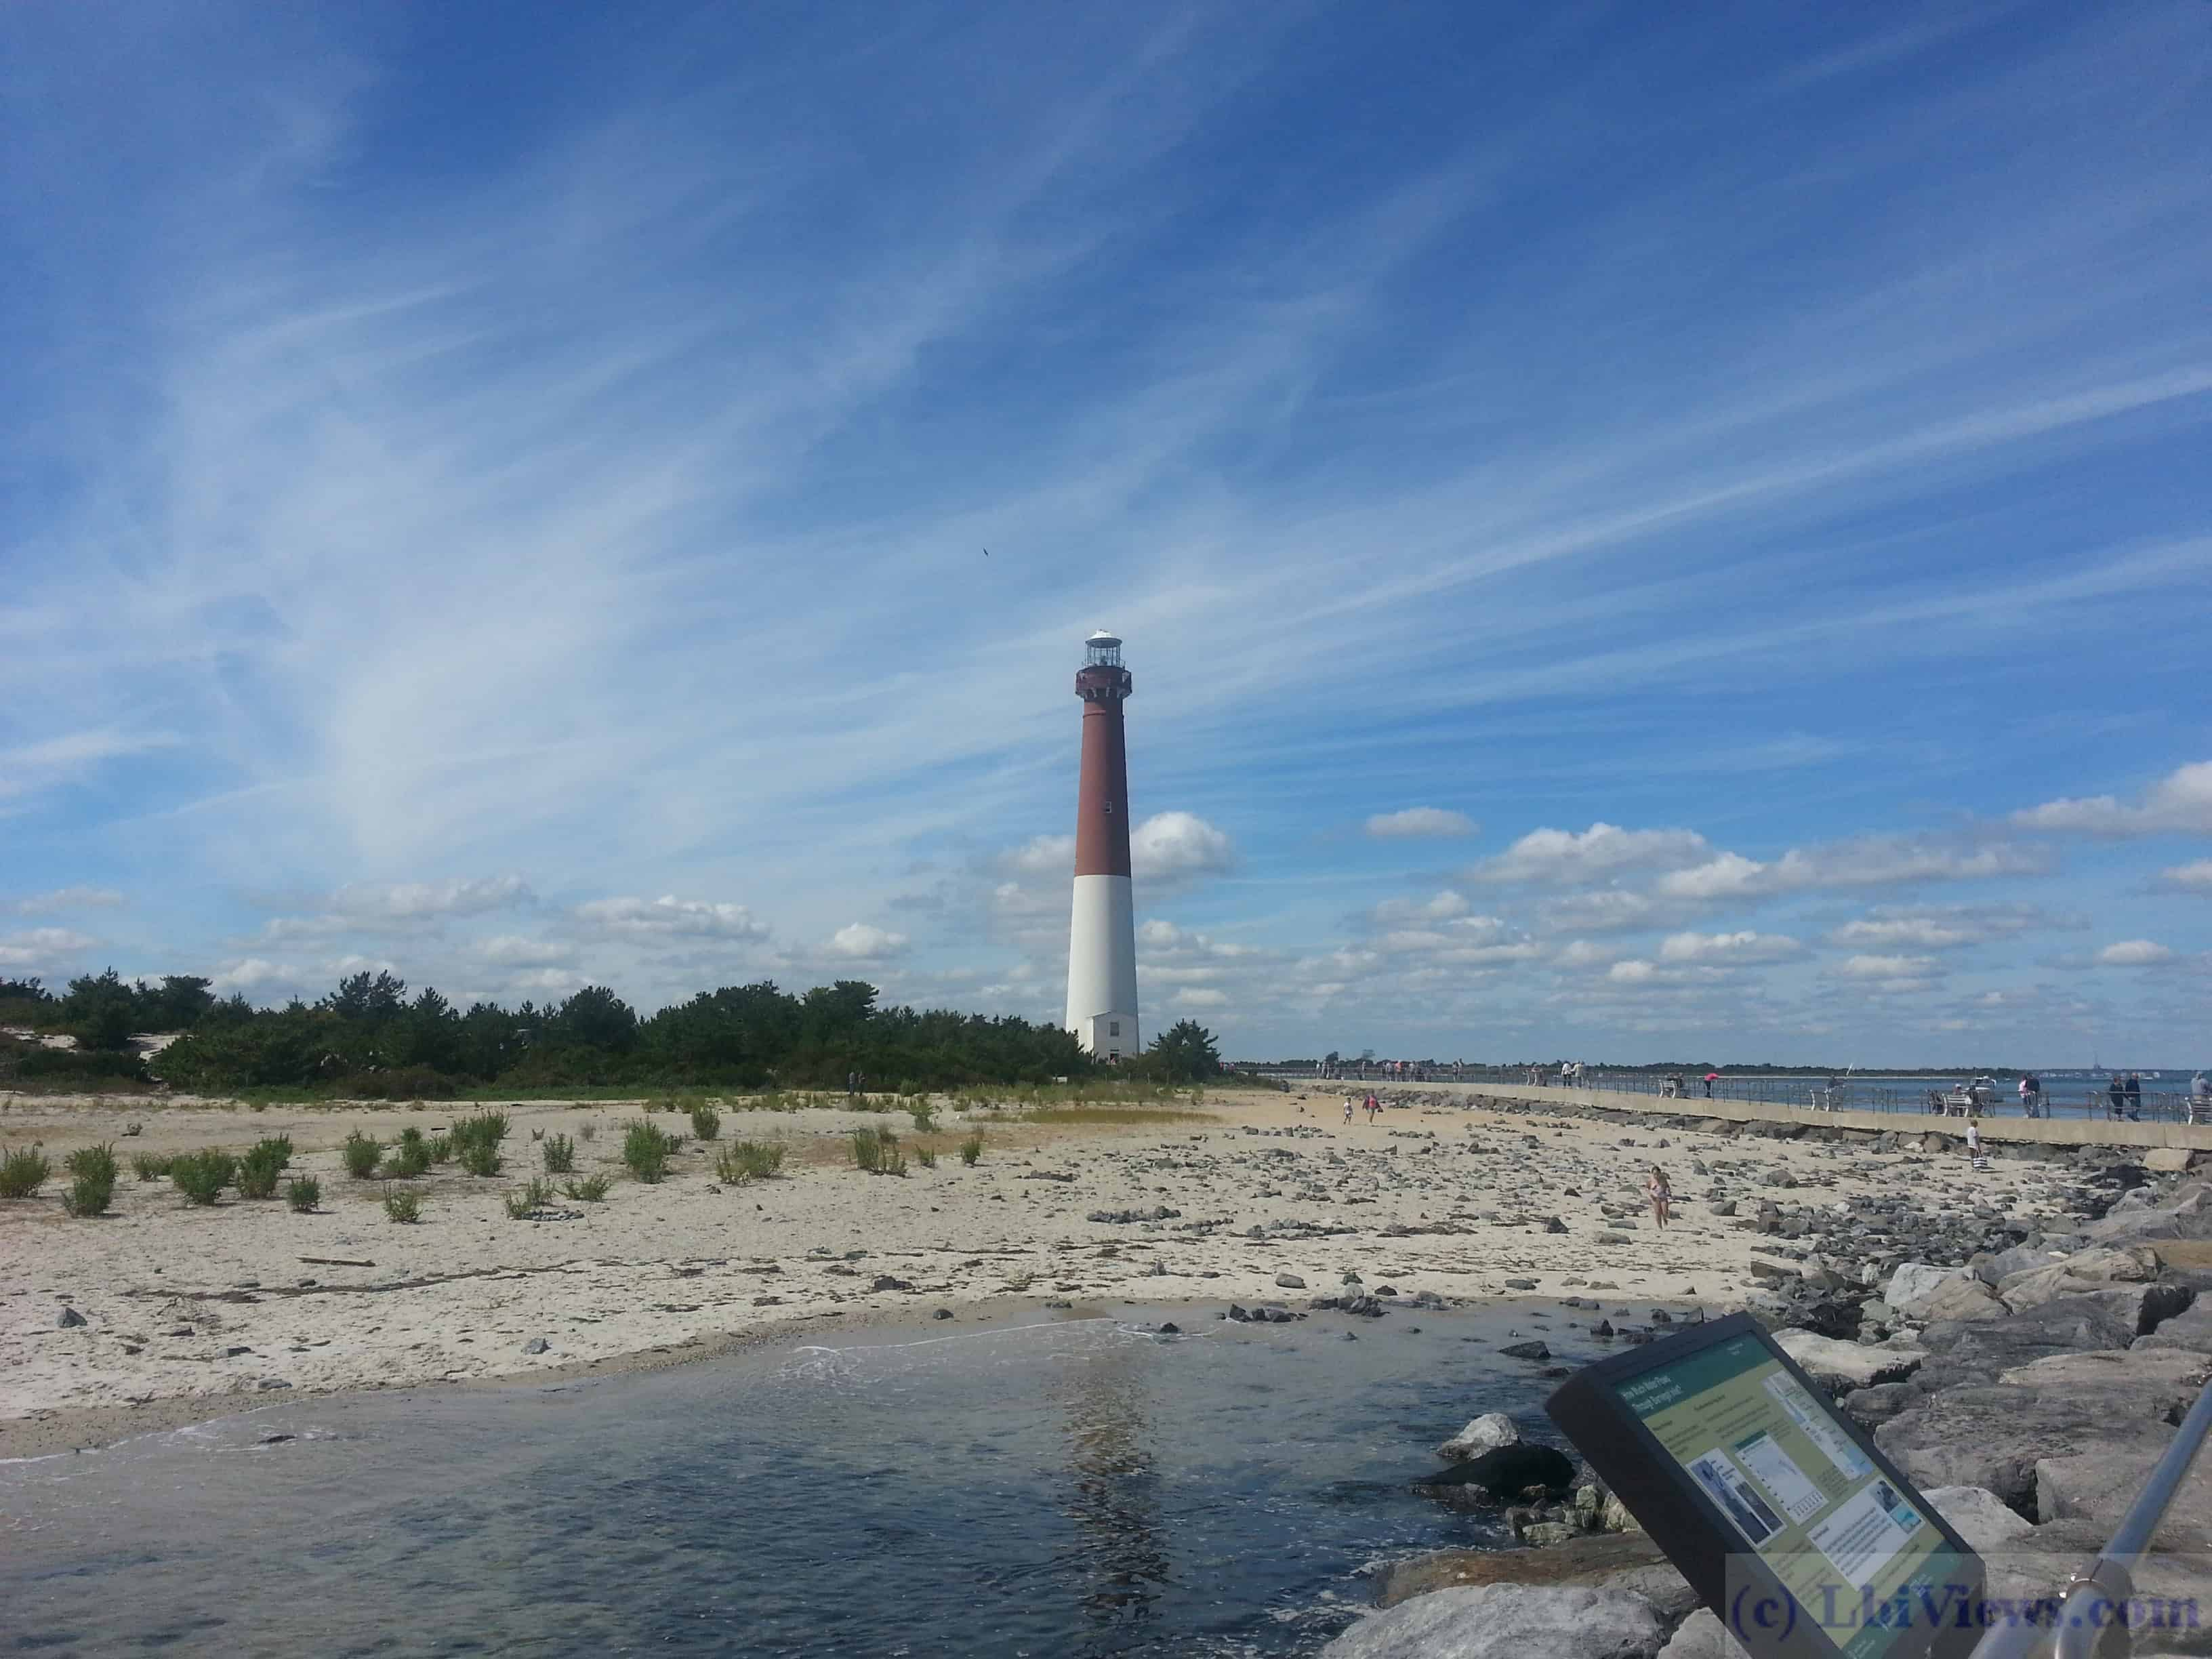 Barnegat Lighthouse from the Jetty